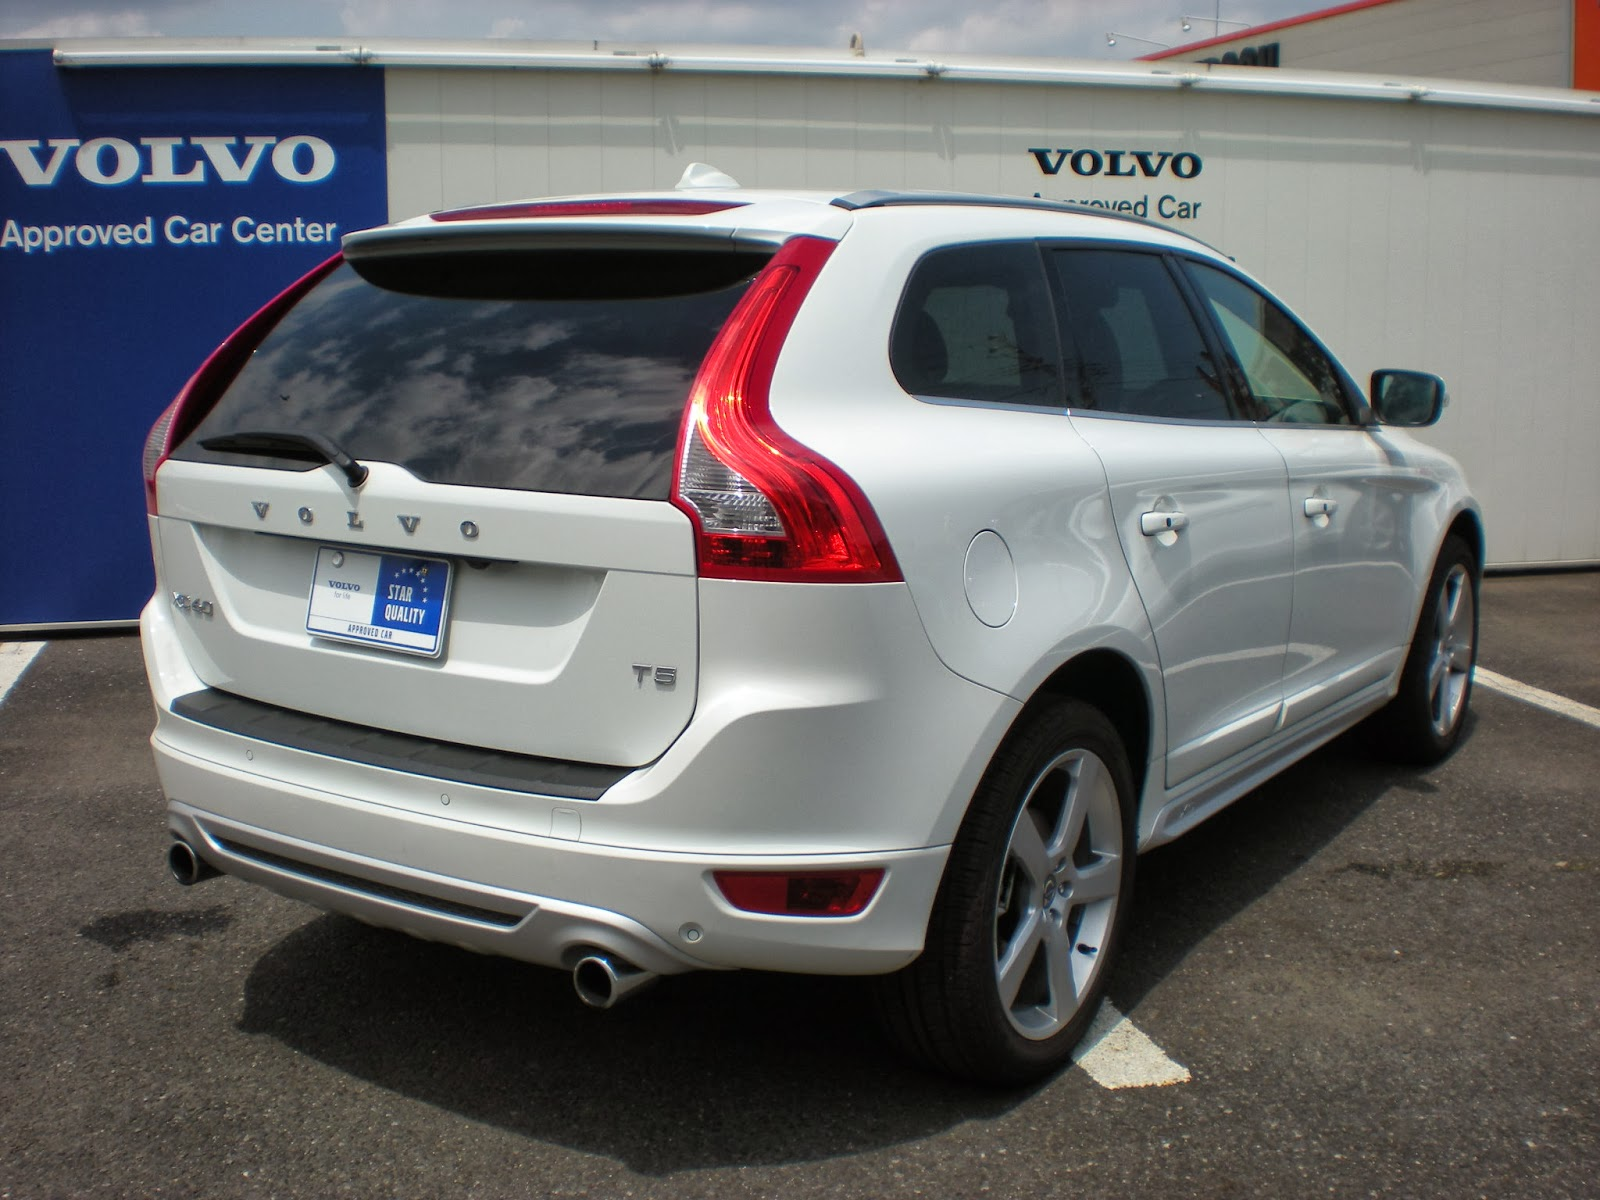 Exterior Photos 2017 Volvo Xc60 Interior together with 2015 Volvo V60 T5 Drive E Review The New York Times together with 2016 Volvo Xc60 Overview further Black Color 2016 Volvo Xc70 T5 Wagon as well 2014 Volvo Xc60 T6 Awd Review. on 2015 volvo xc60 t5 platinum